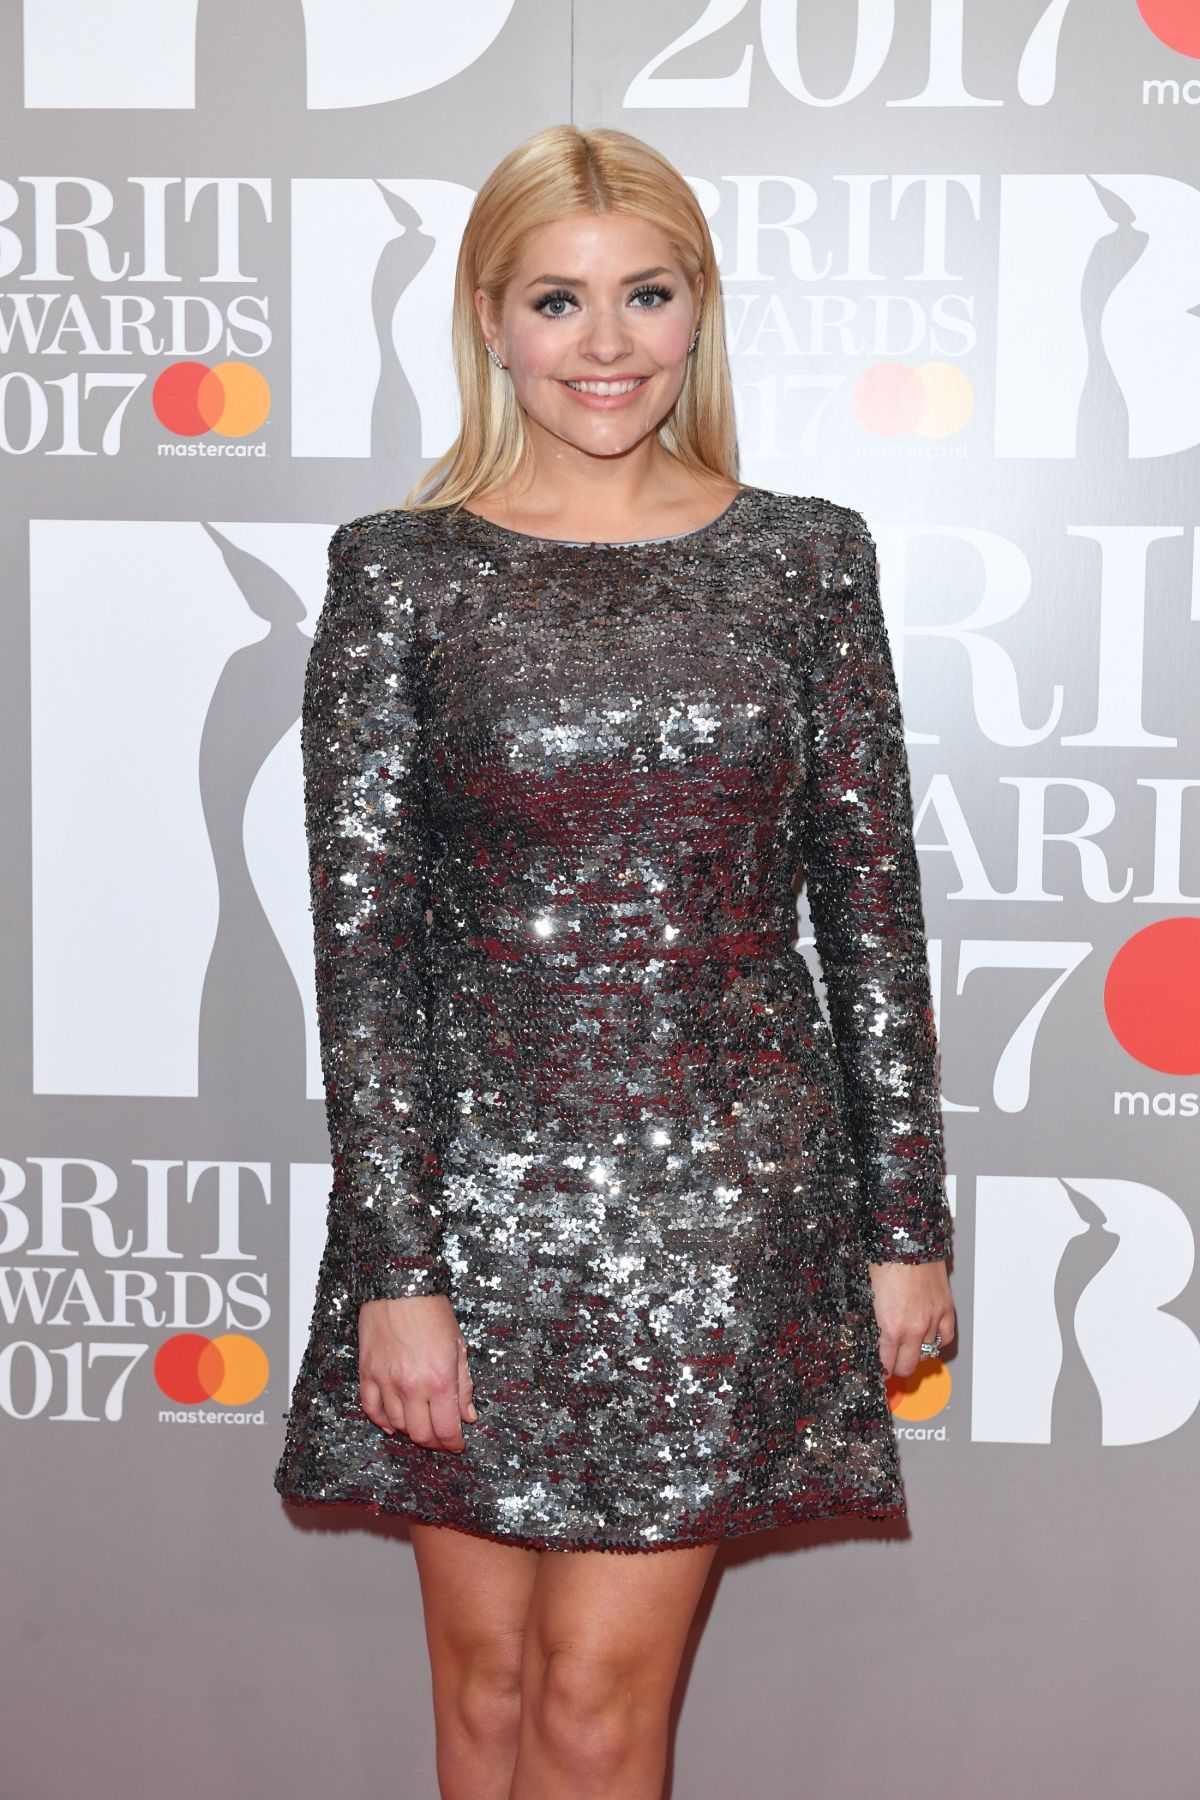 Holly Willoughby | Brit Awards 2017 | Silver Sequin Dress by Suzanne Neville